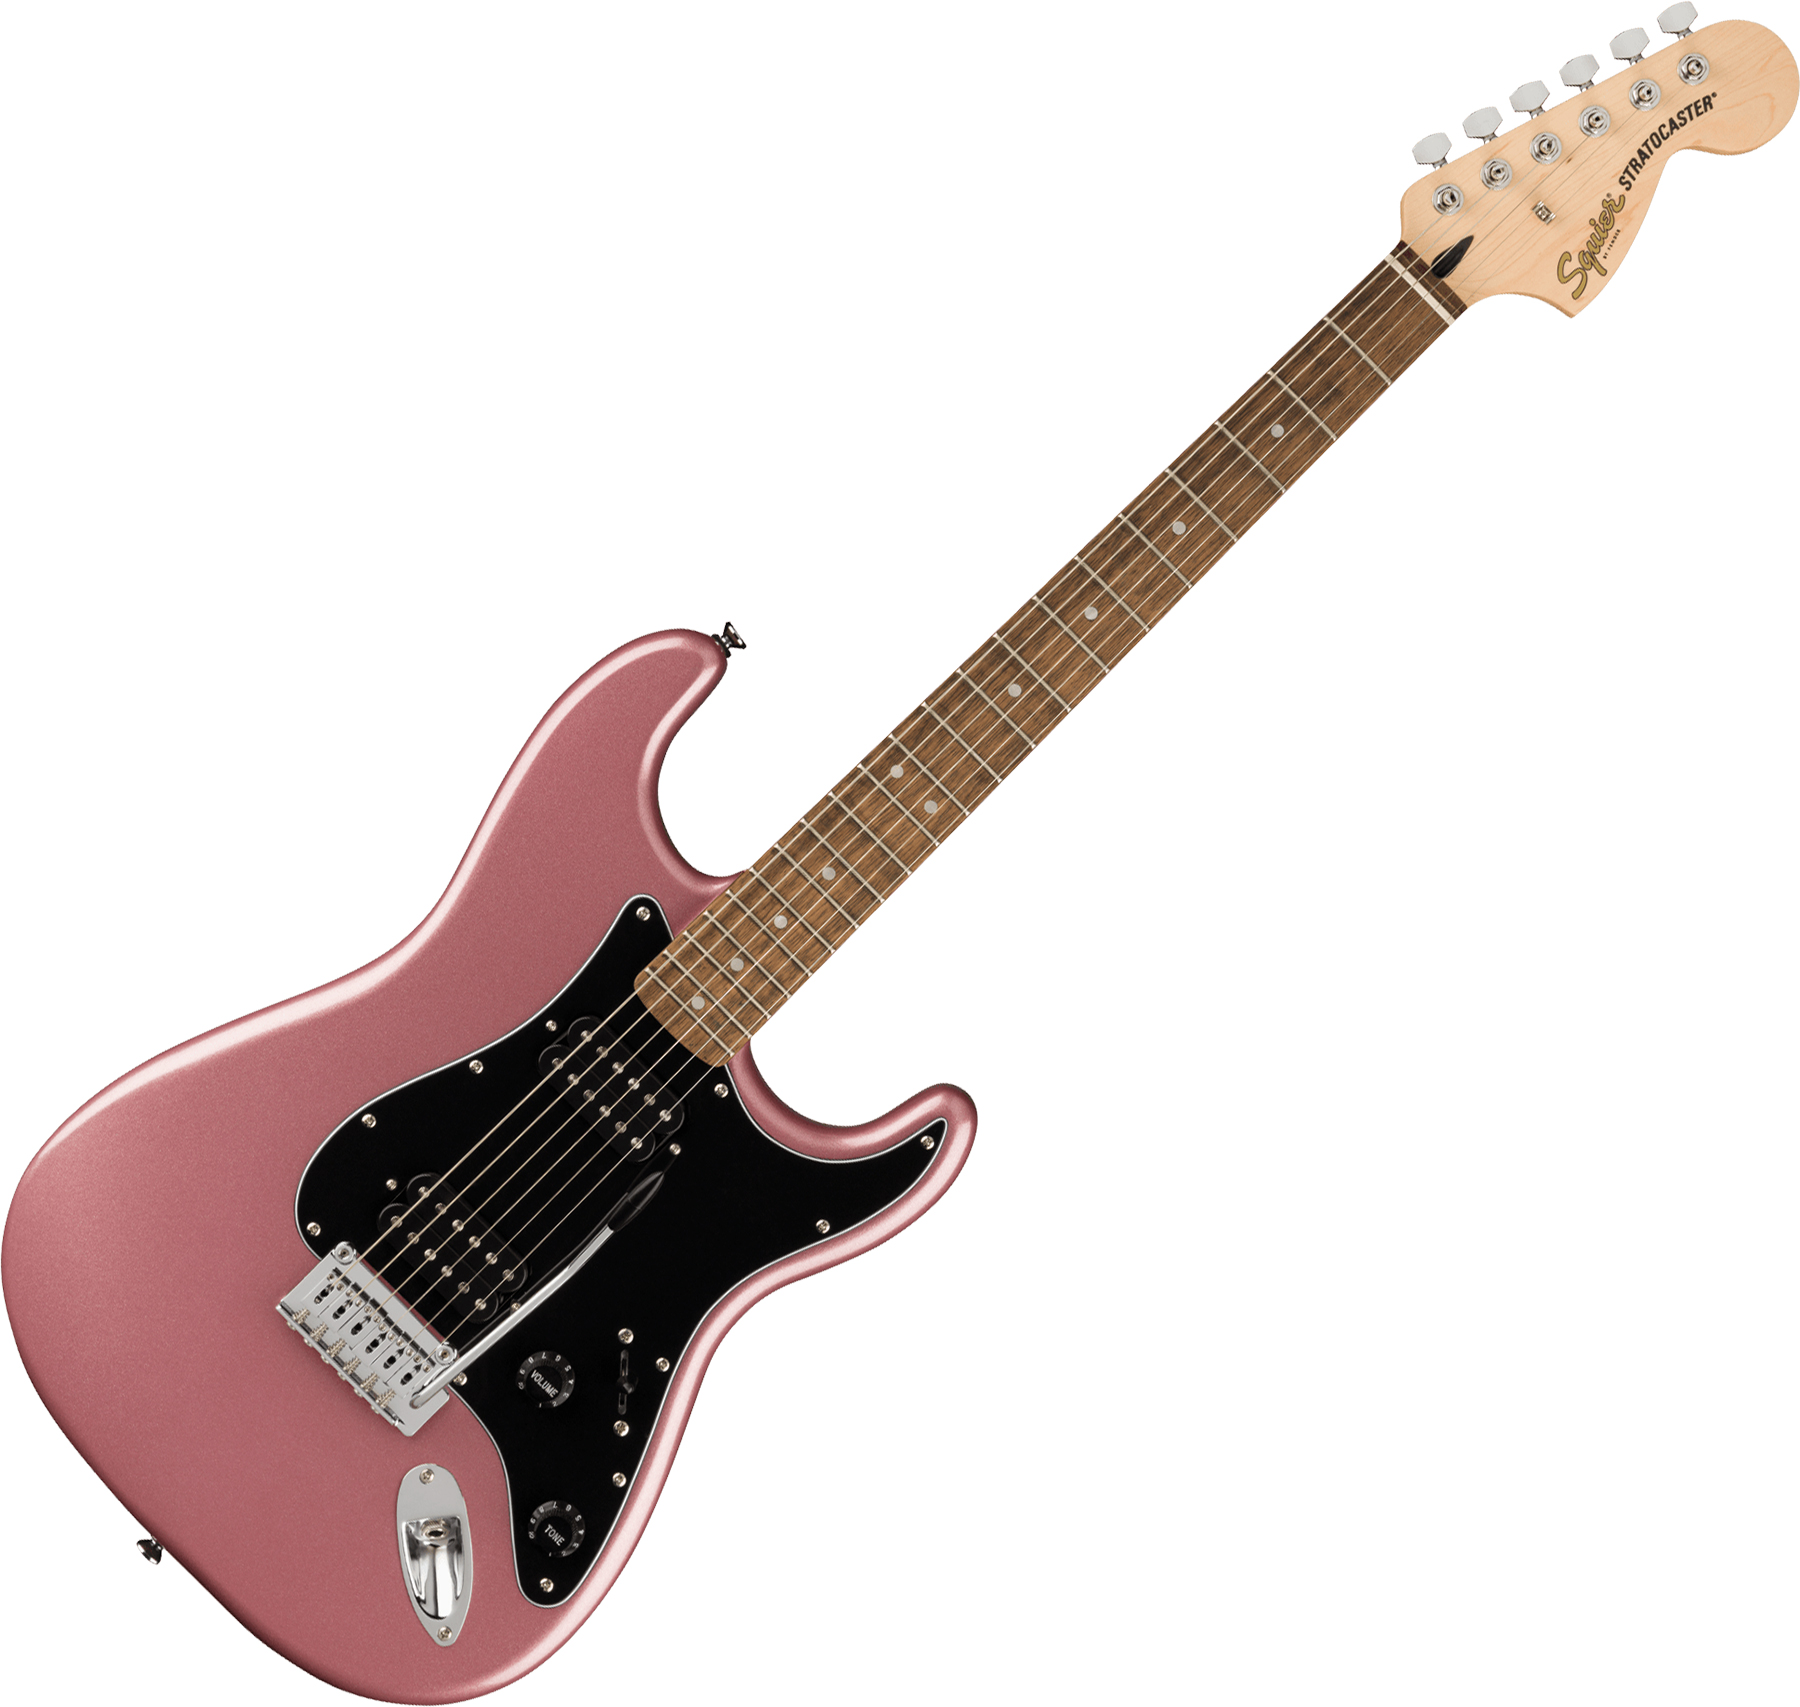 Solid body electric guitar Squier Affinity Series Stratocaster HH 2021 (LAU) - burgundy mist